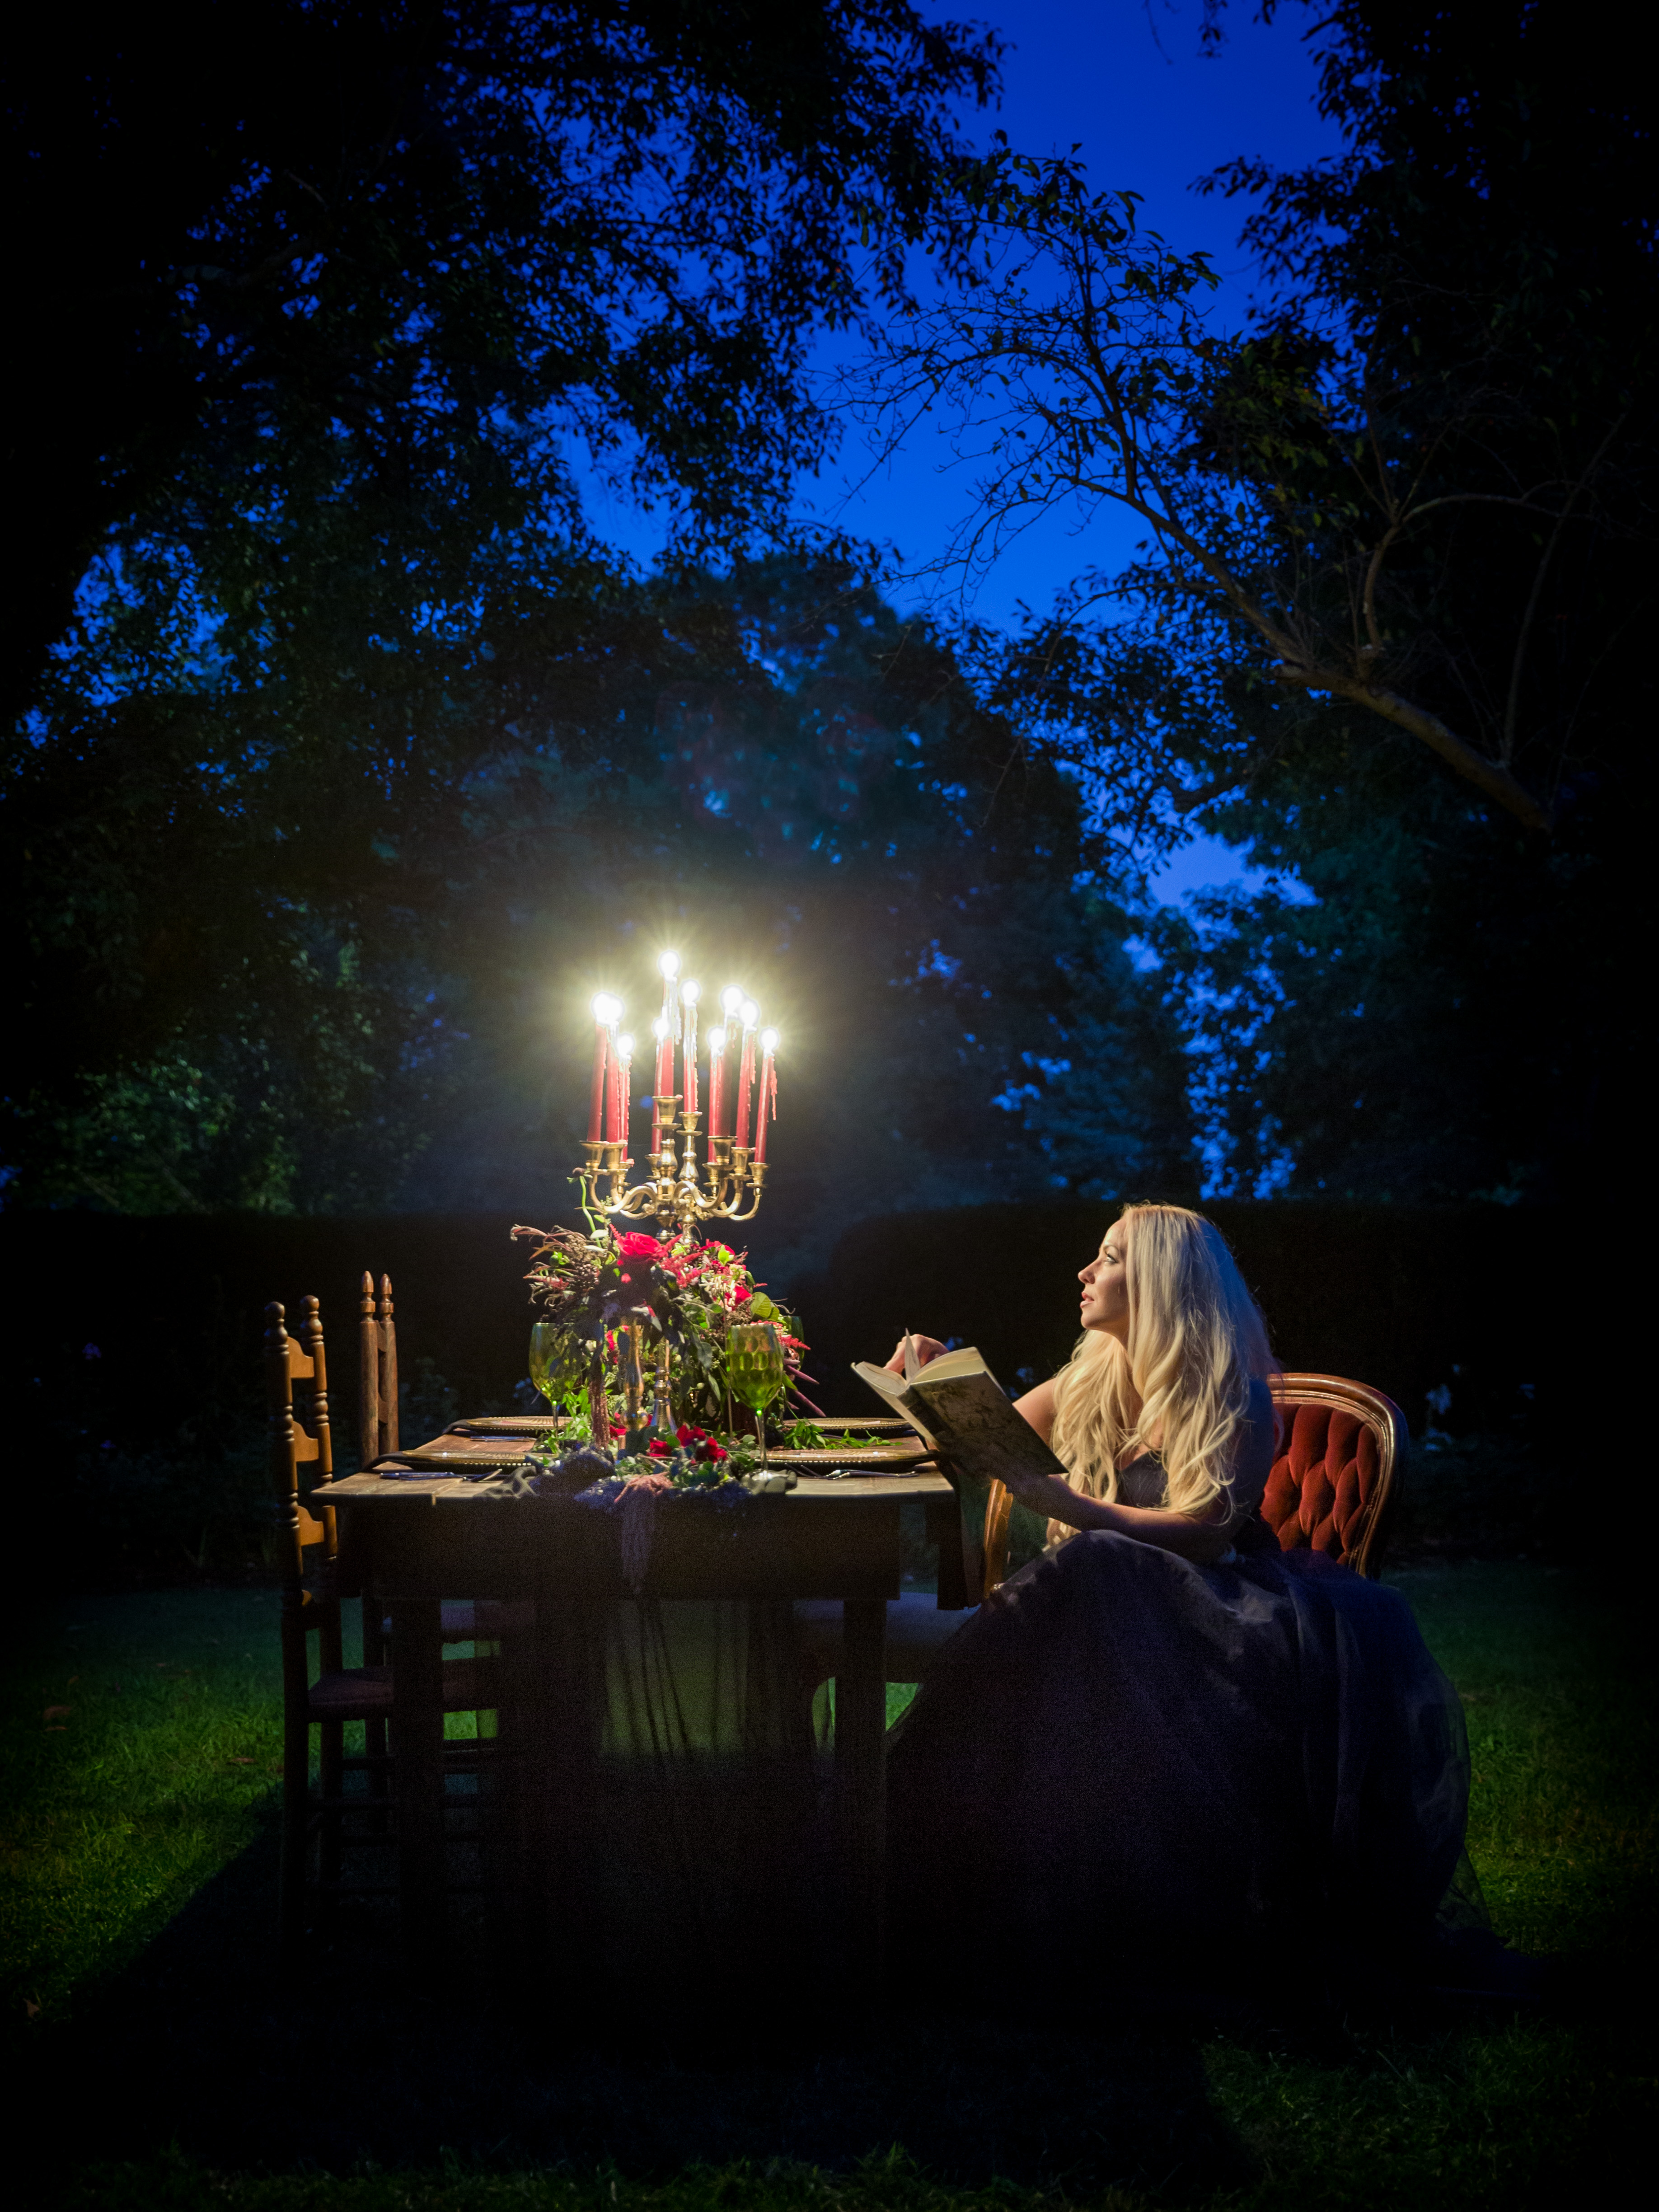 outside picture at night with bride at table